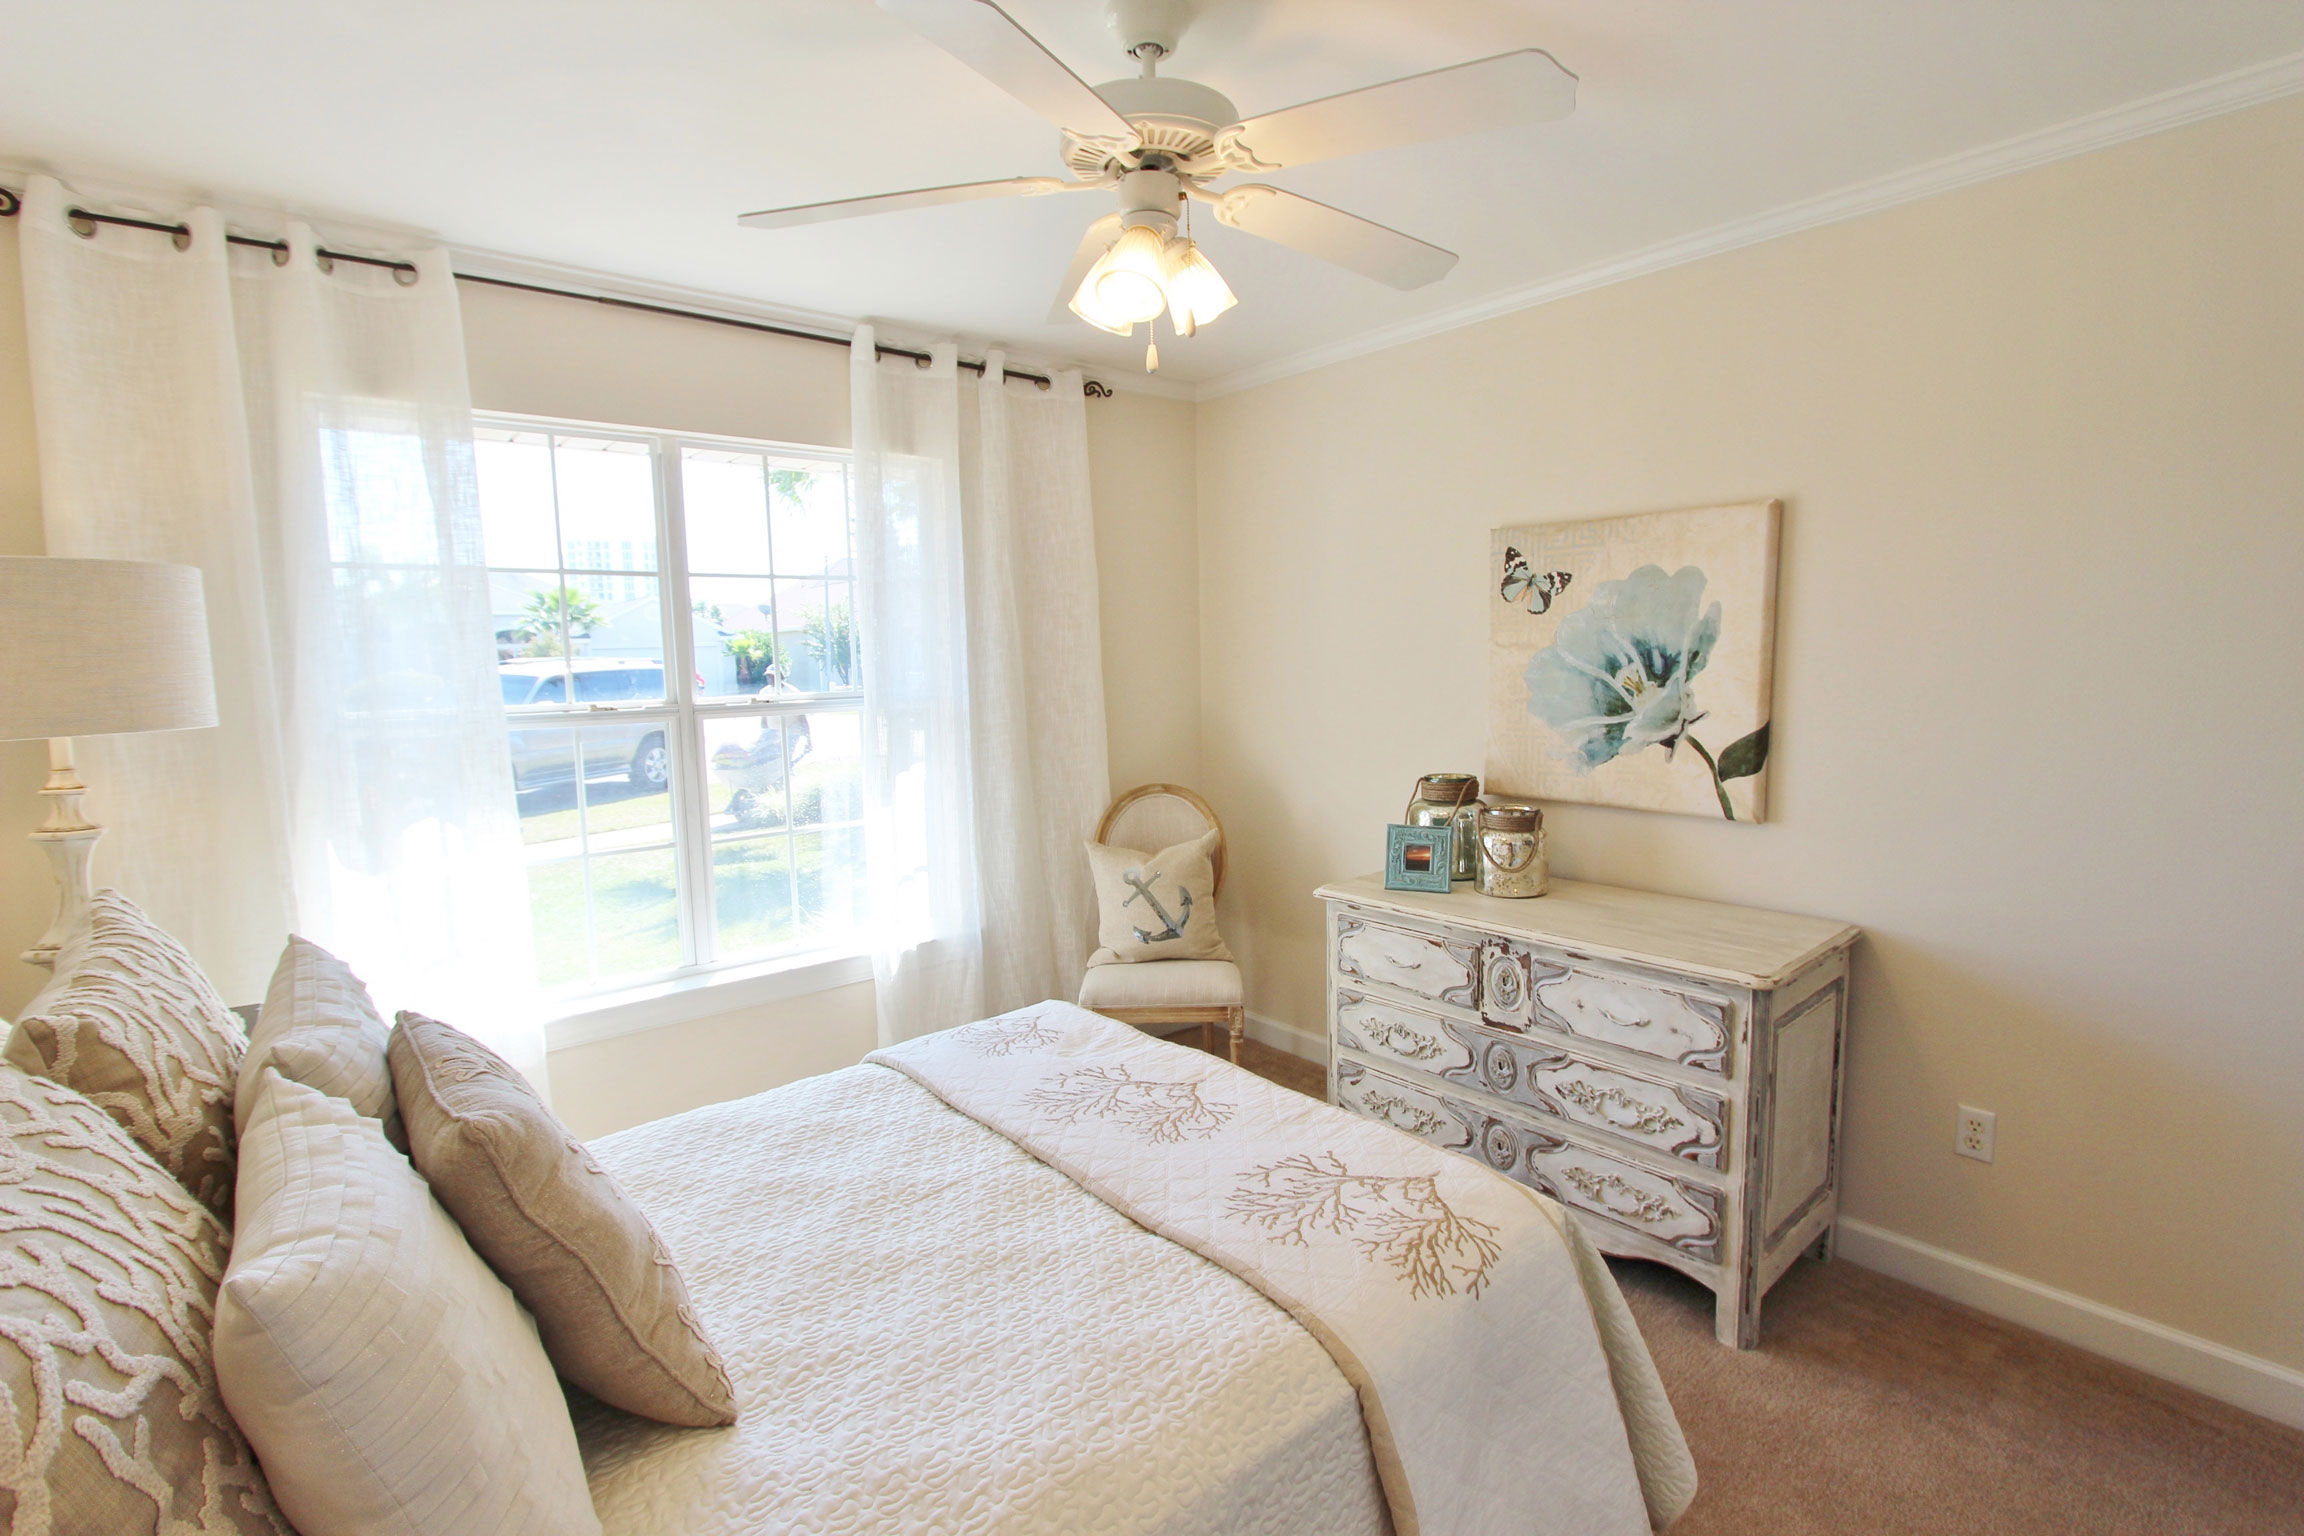 Image of Bedroom with Professionally Staged Furniture